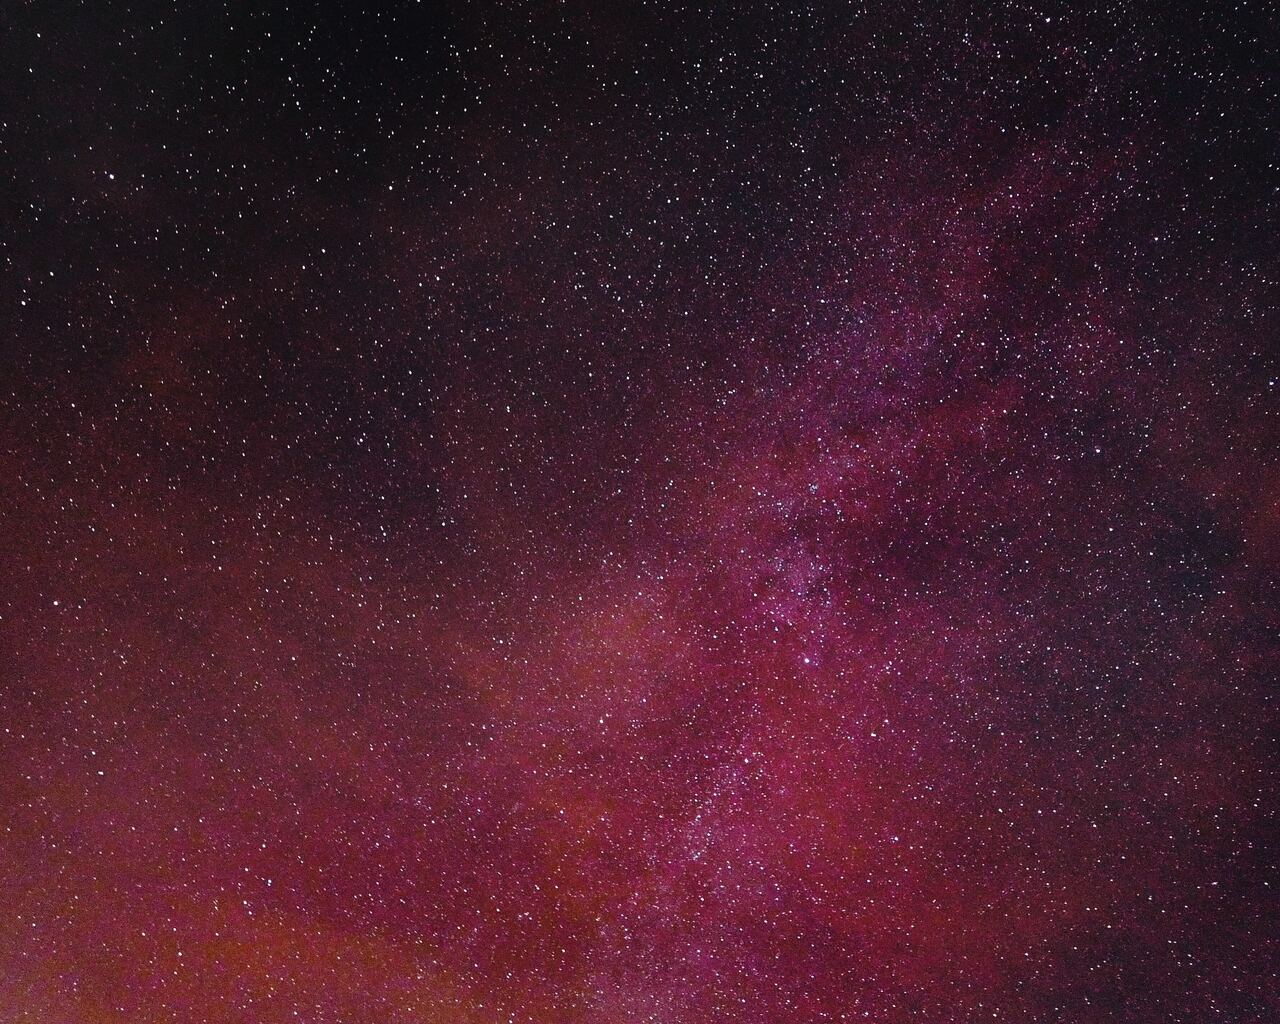 1280x1024 Pink Stars Night Astronomy 4k 1280x1024 Resolution Hd 4k Wallpapers Images Backgrounds Photos And Pictures